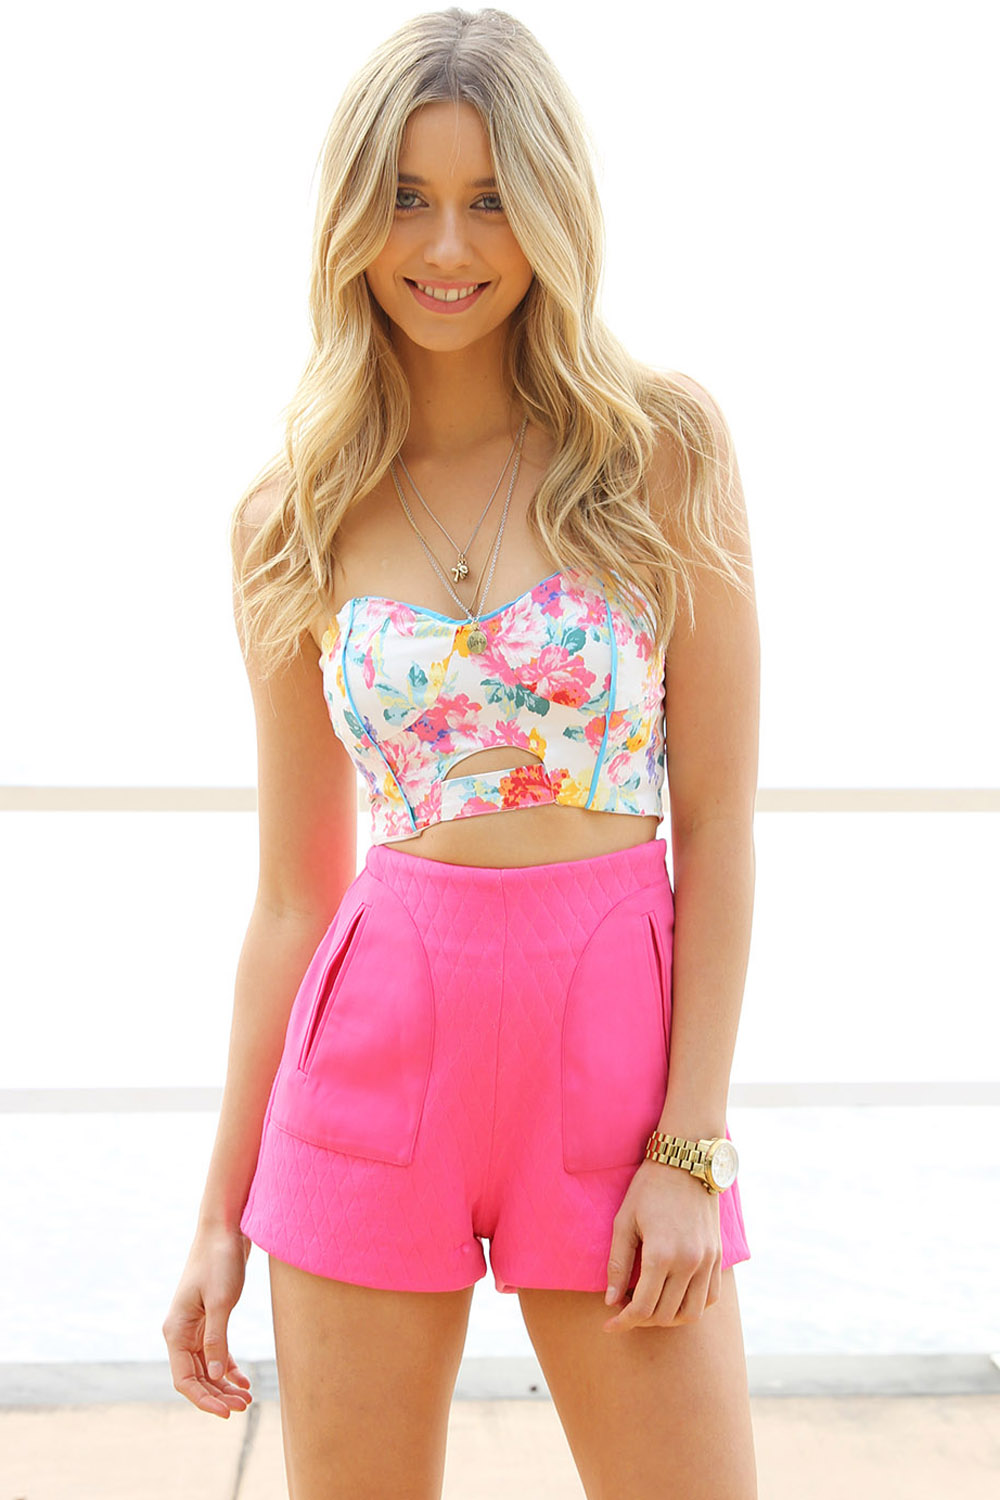 Tank Top Floral Tank Top Pretty Skirt Turquoise Shirt Crop